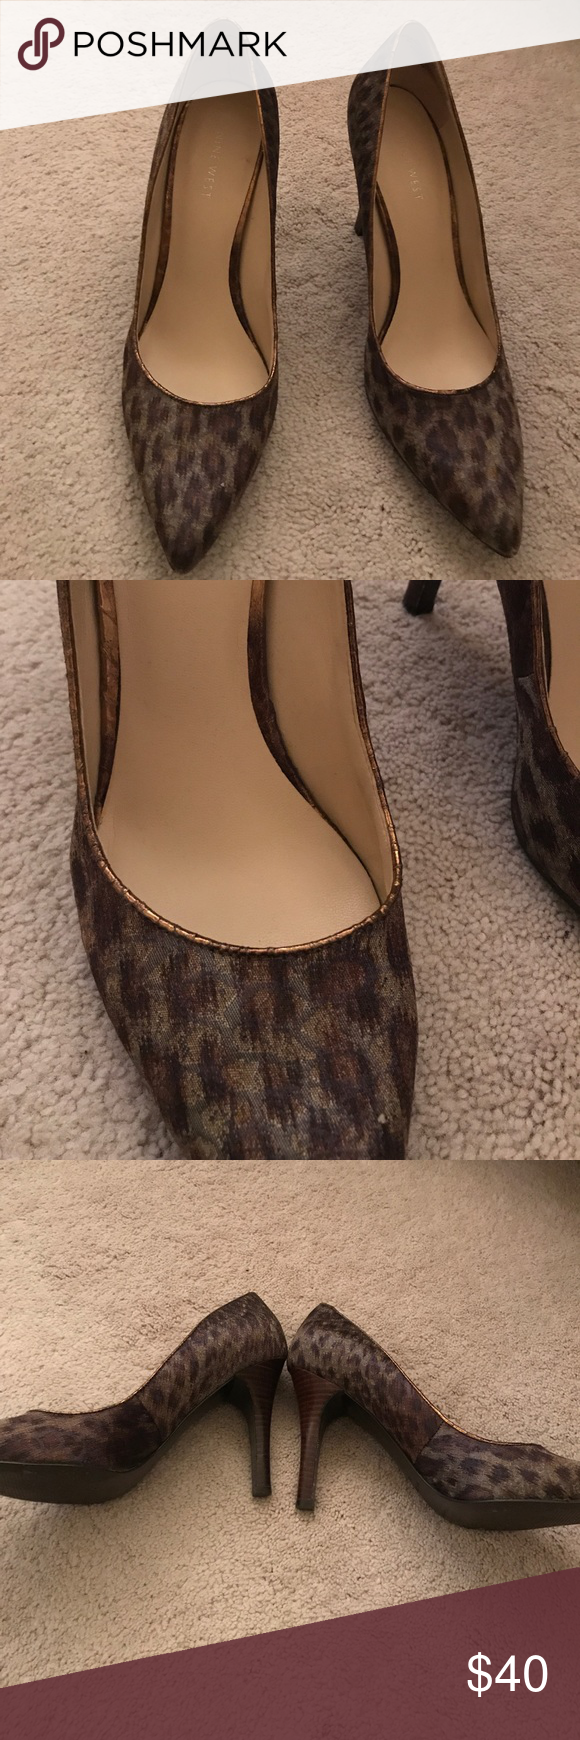 4638ce420f7b Nine West leopard shimmer pumps Almost like new. Worn maybe 2 times ...